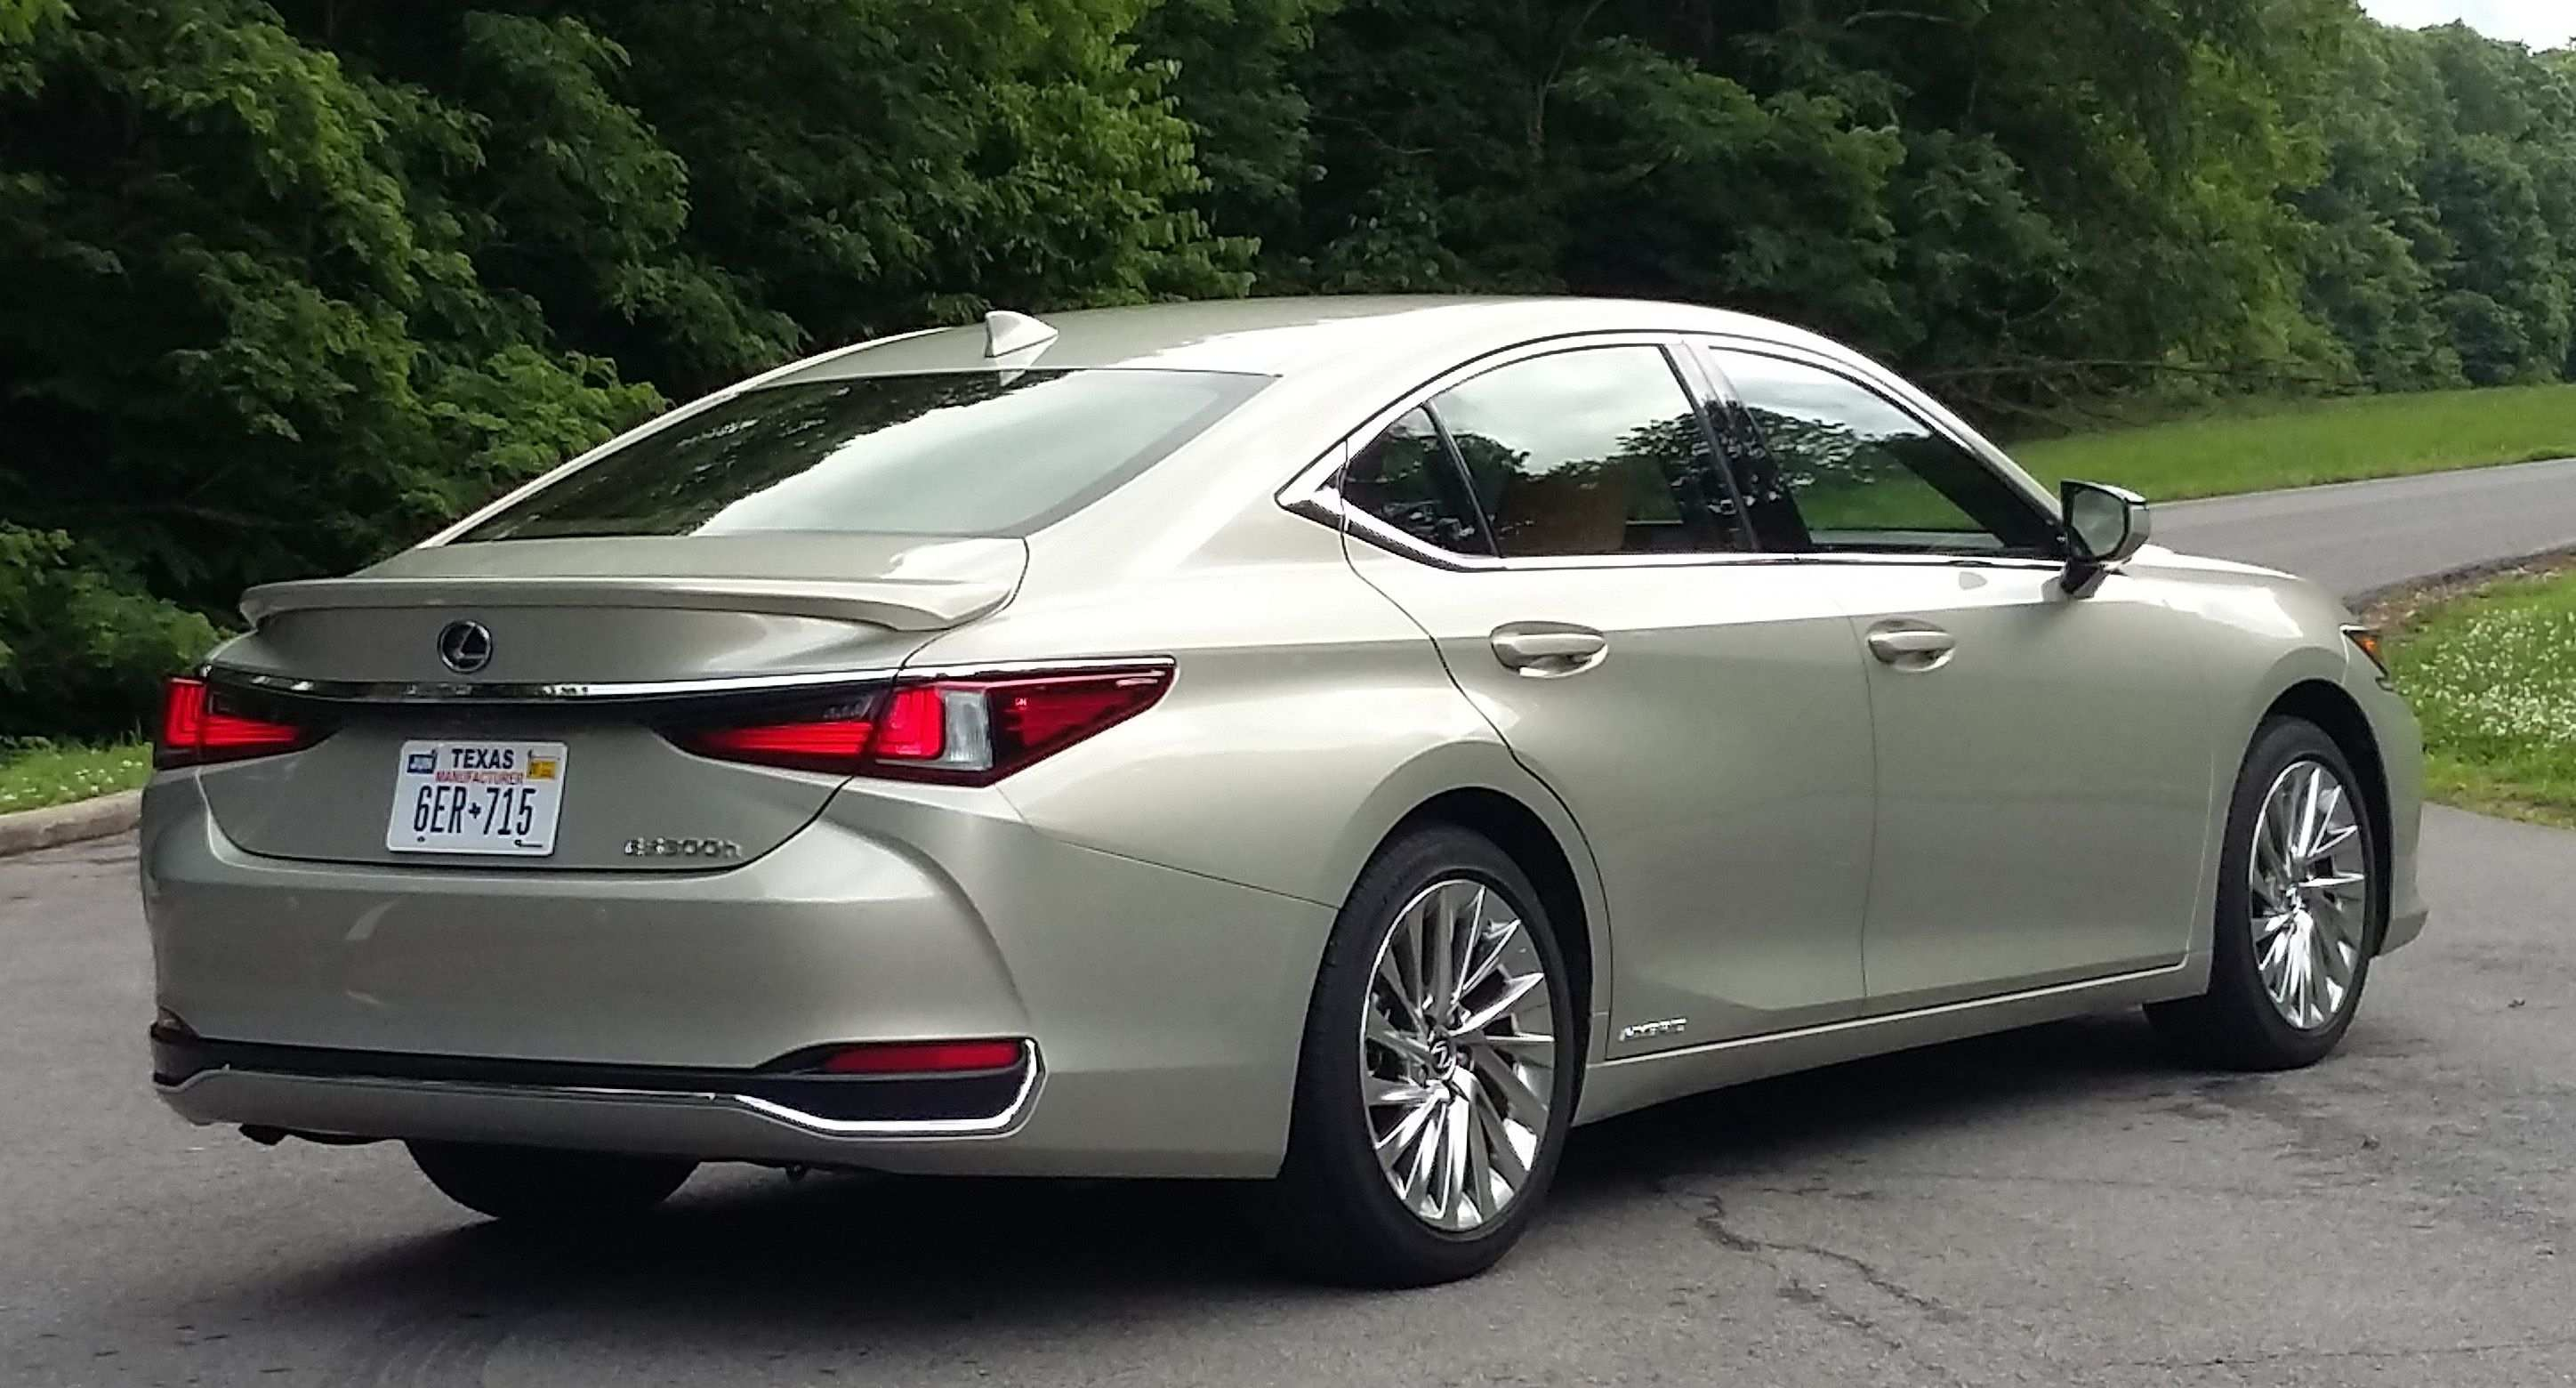 85 A When Lexus 2019 Come Out Release Date And Concept